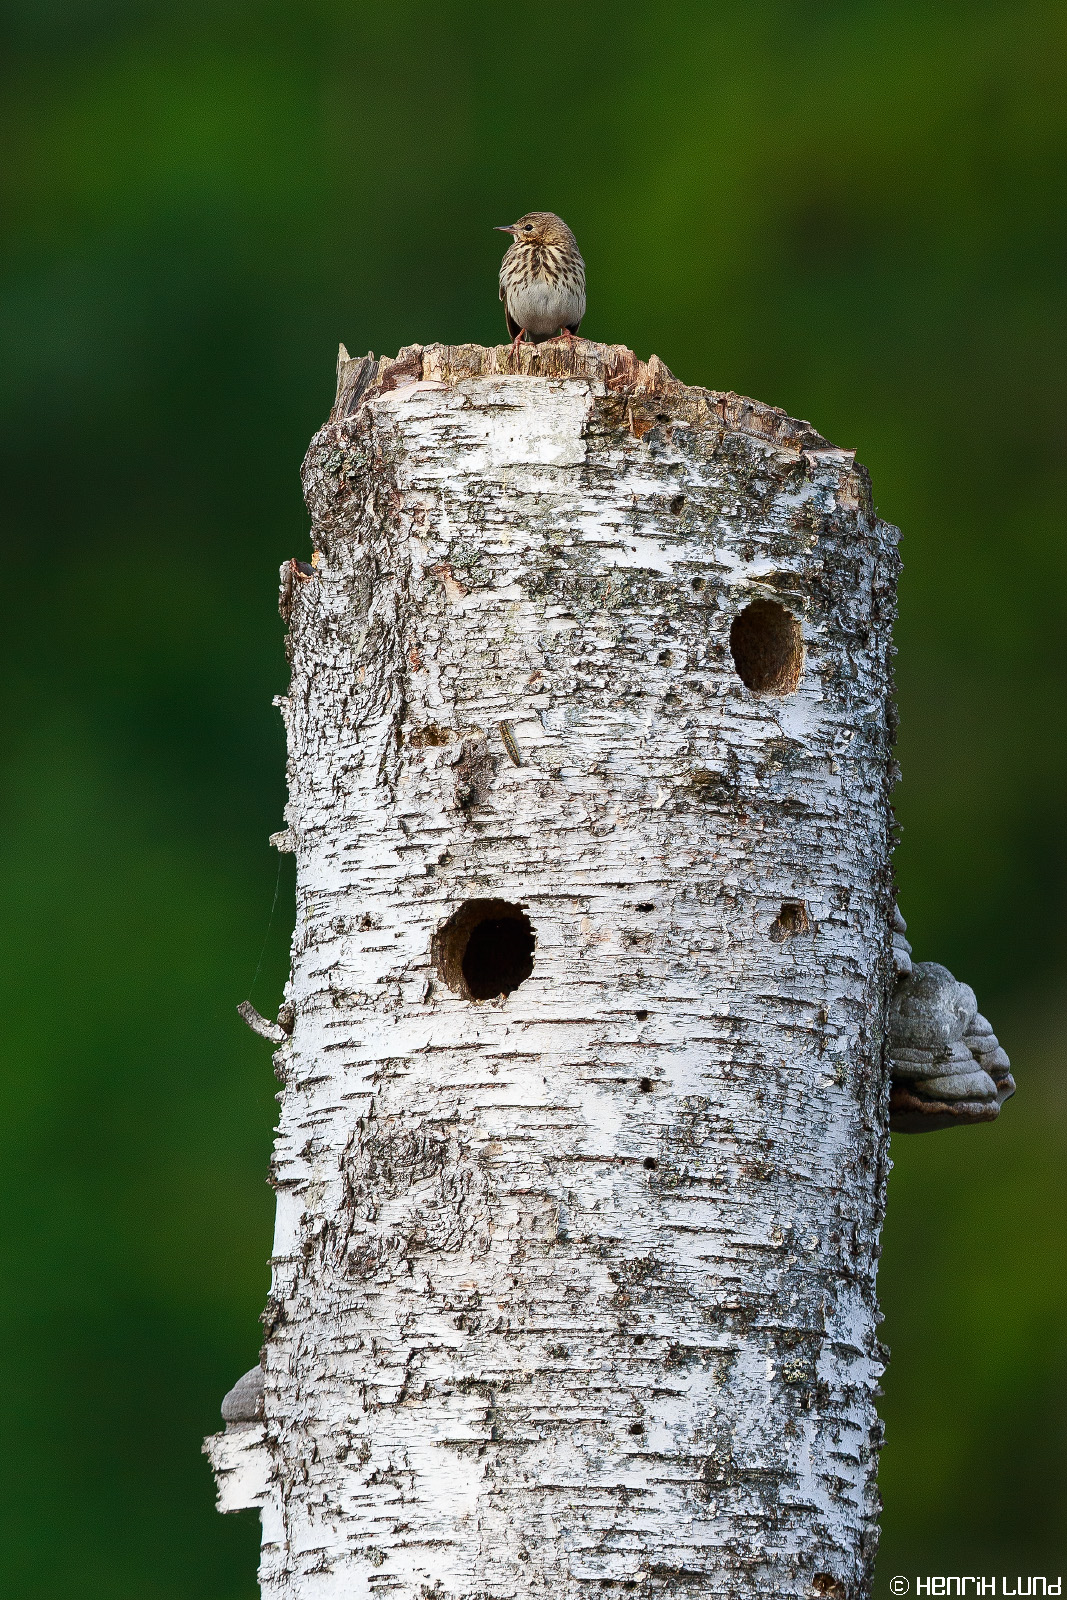 A tree pipit on top of a birch-apartment. Lappträsk, Finland, May 2014.